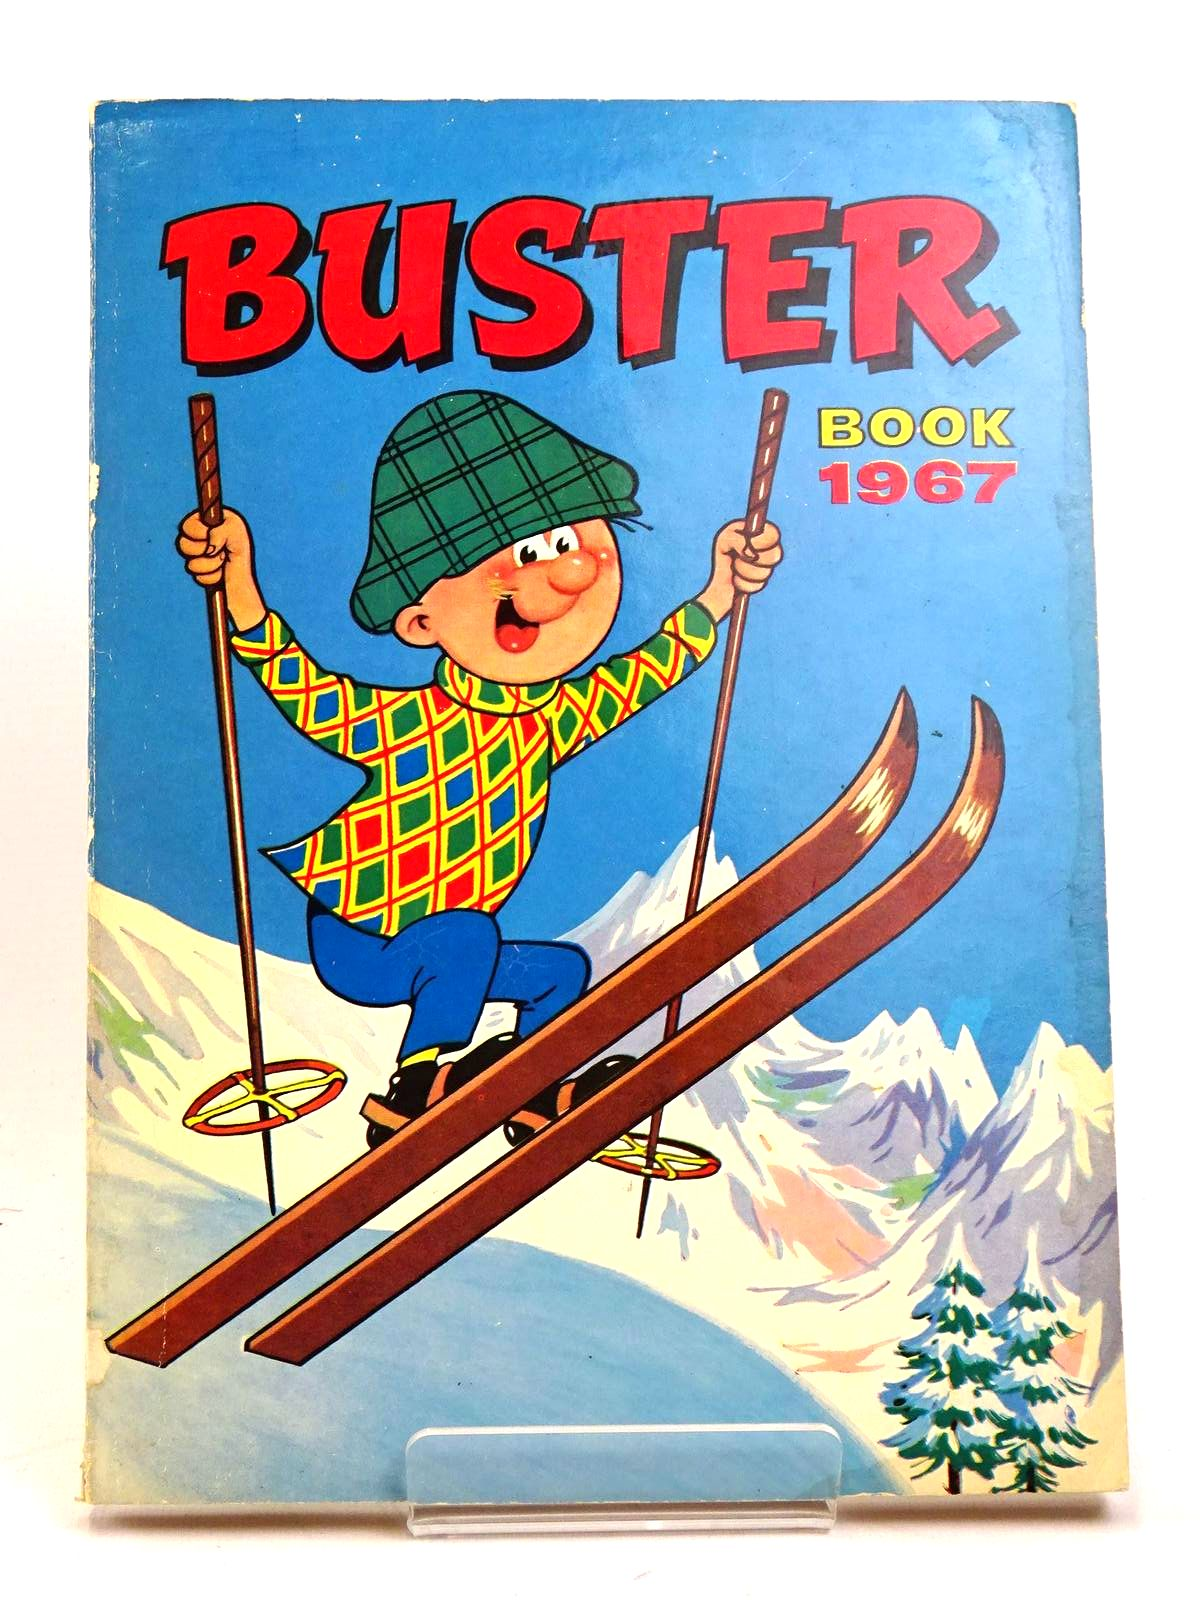 Photo of BUSTER BOOK 1967 published by Fleetway Publications Ltd. (STOCK CODE: 1317931)  for sale by Stella & Rose's Books